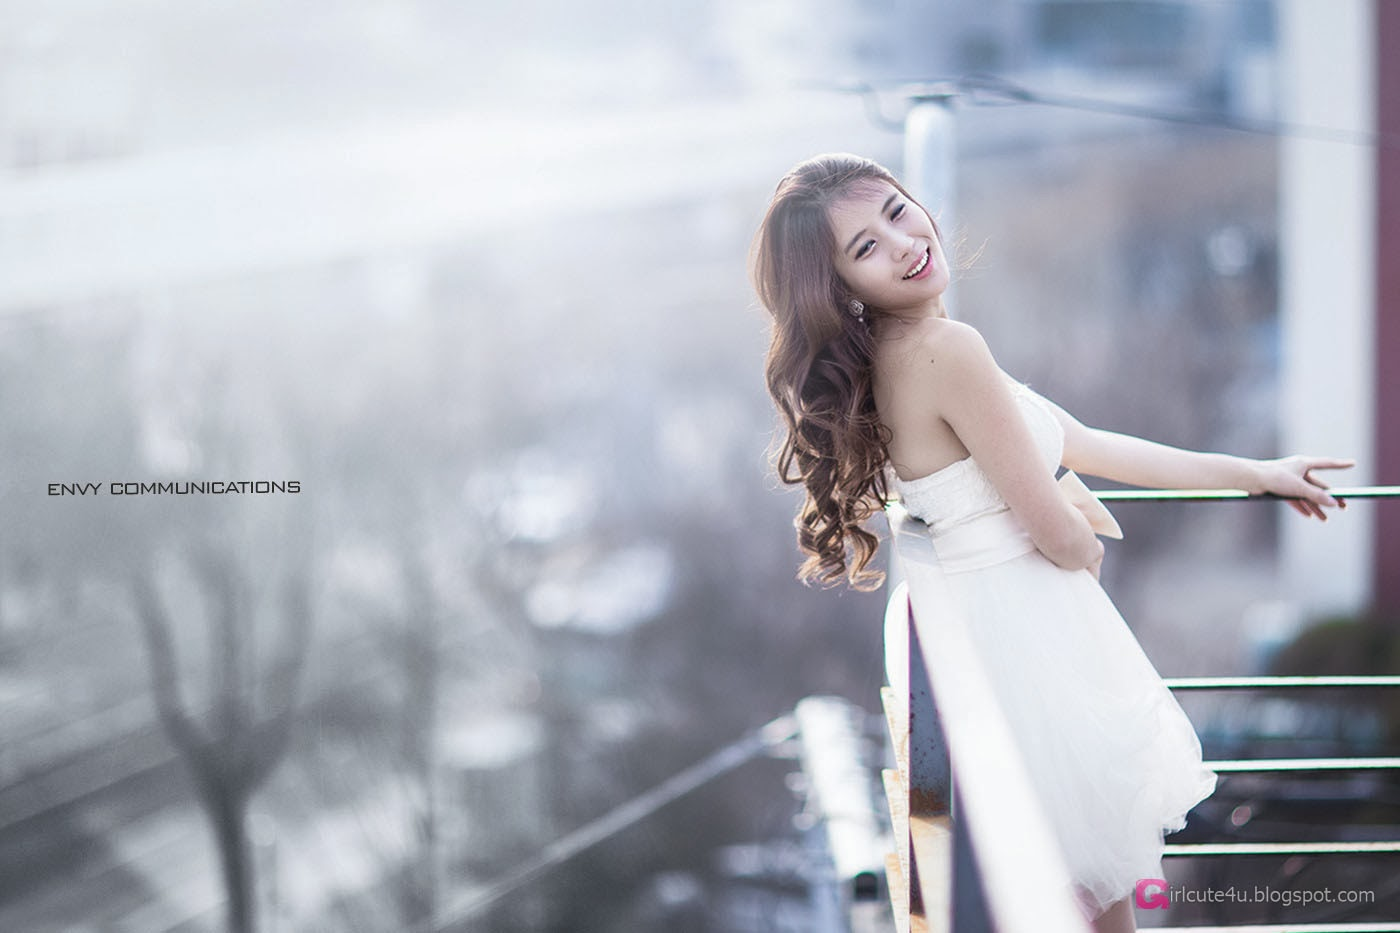 4 Cha Jung Ah - Up On The Roof - very cute asian girl-girlcute4u.blogspot.com